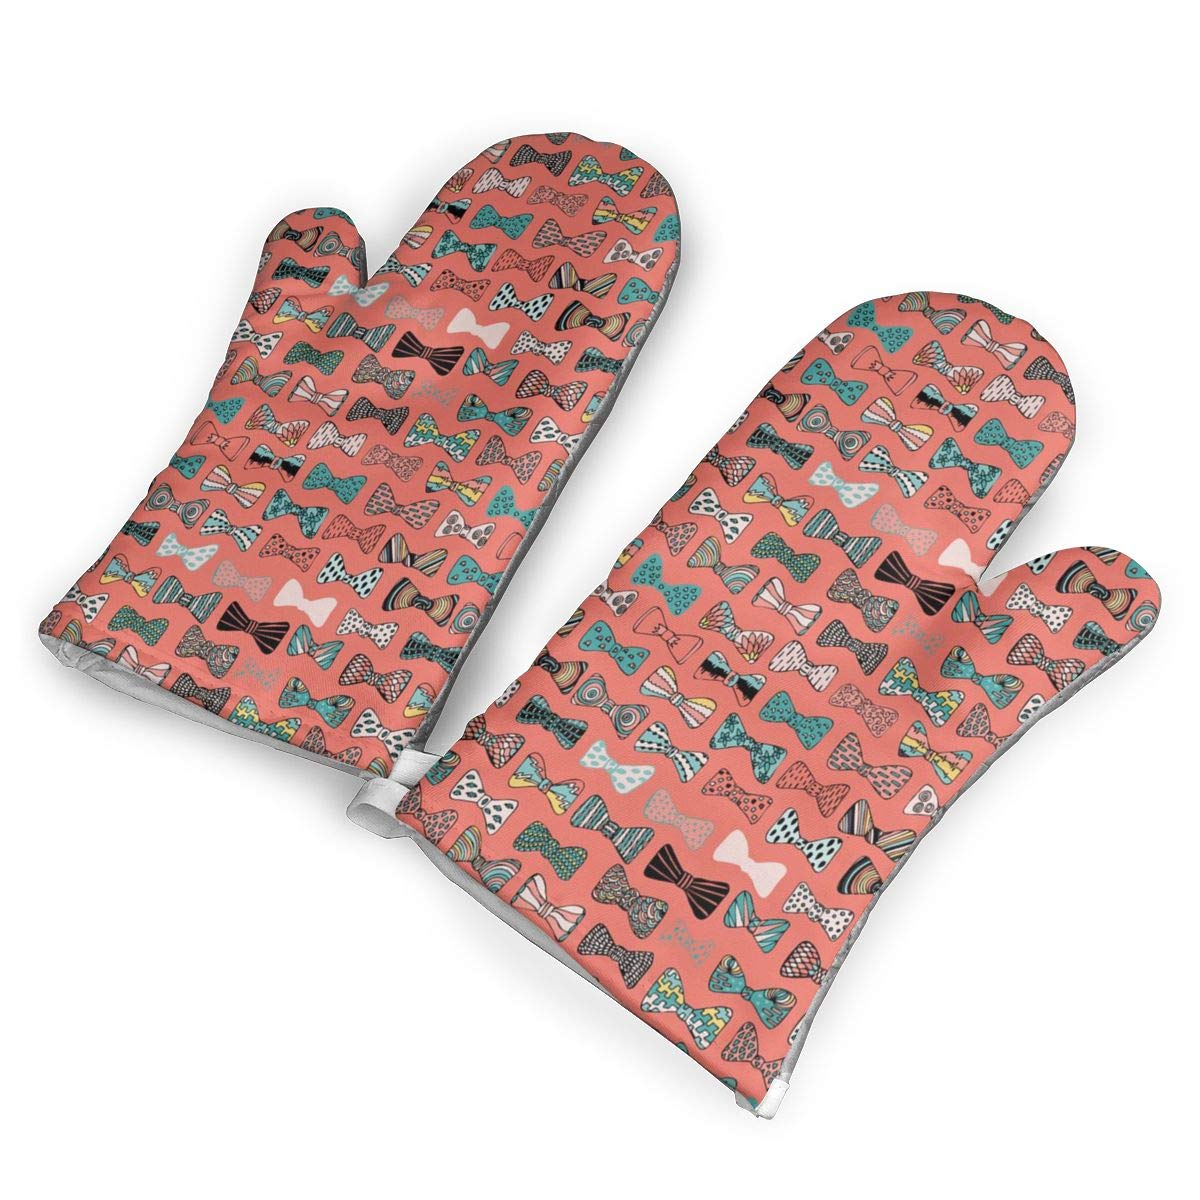 Victoria-Ai Bow Tie Geek in Pink Oven Mitts Premium Heat Resistant Kitchen Gloves Non-Slip Easy to Use Baking Mittens for BBQ/Cooking/Grilling